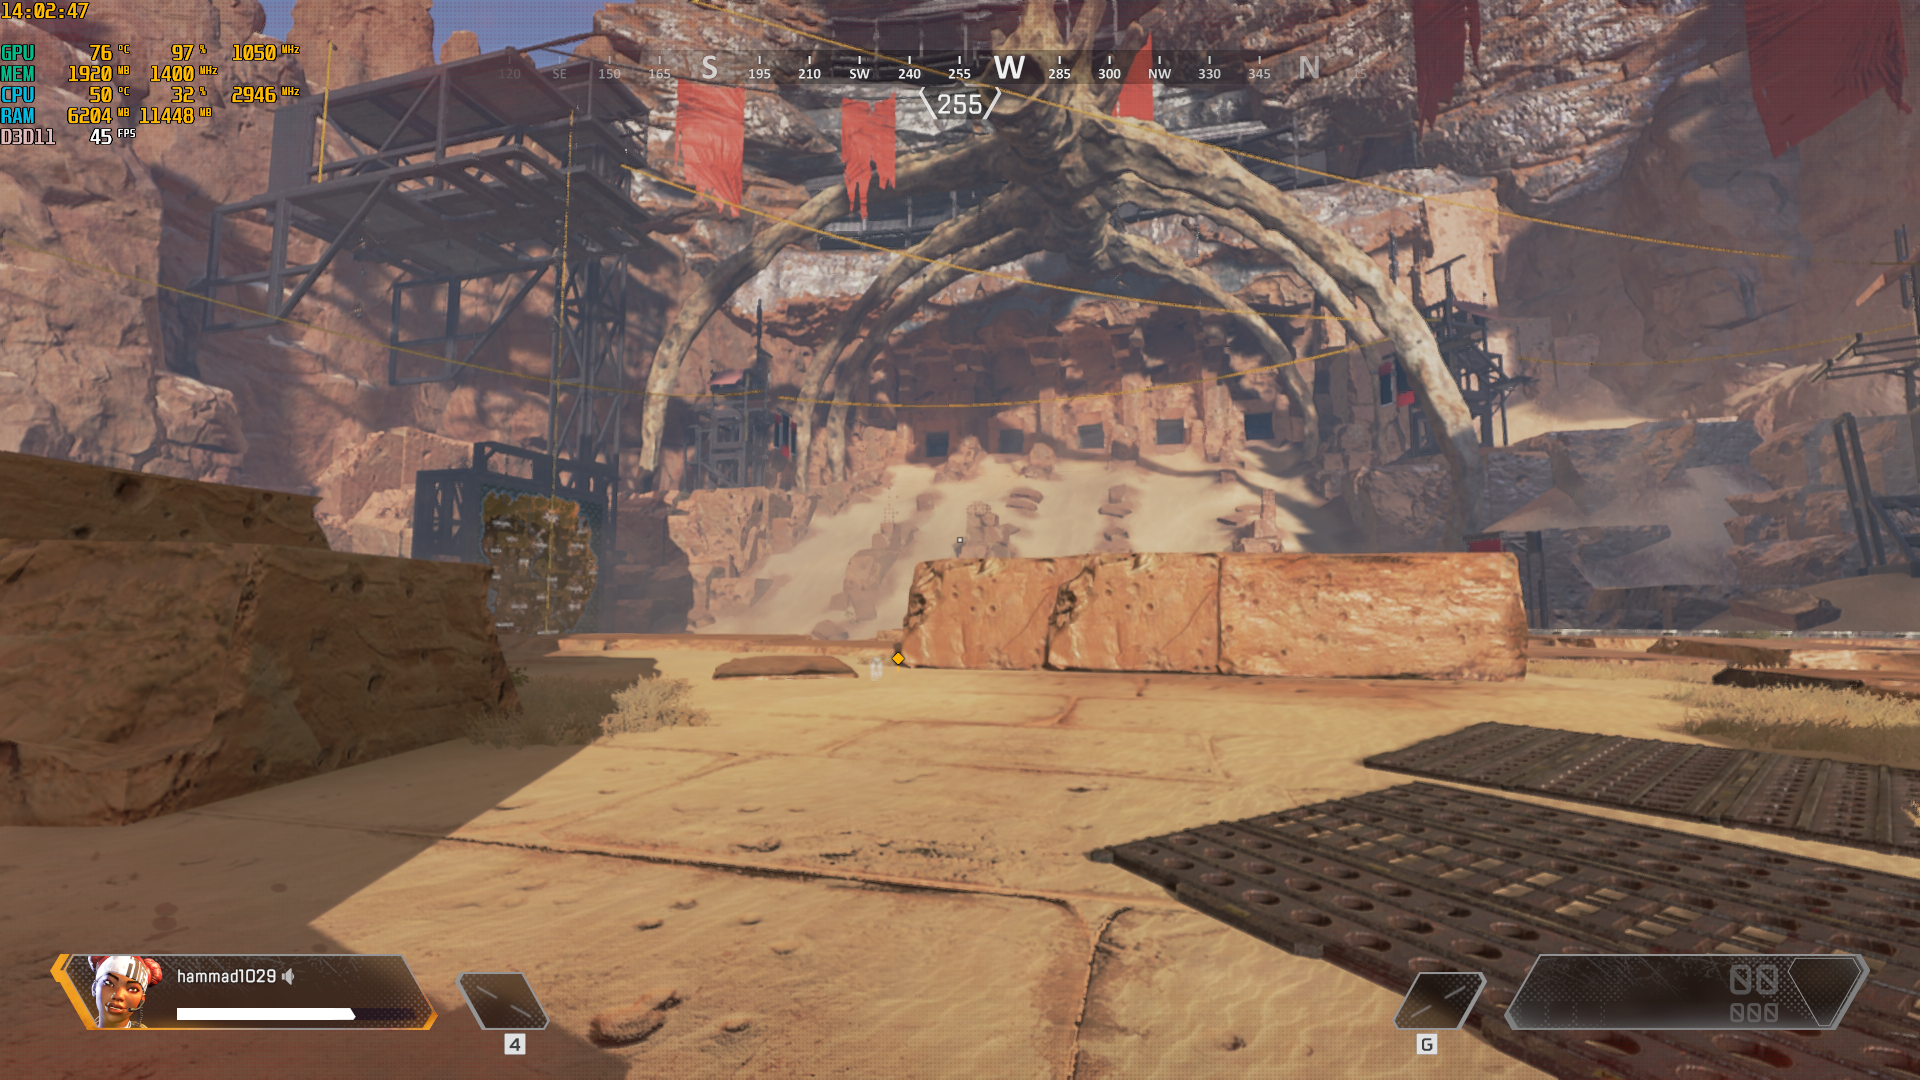 unbearable perfomance on apex legends with the r9 270x - PC